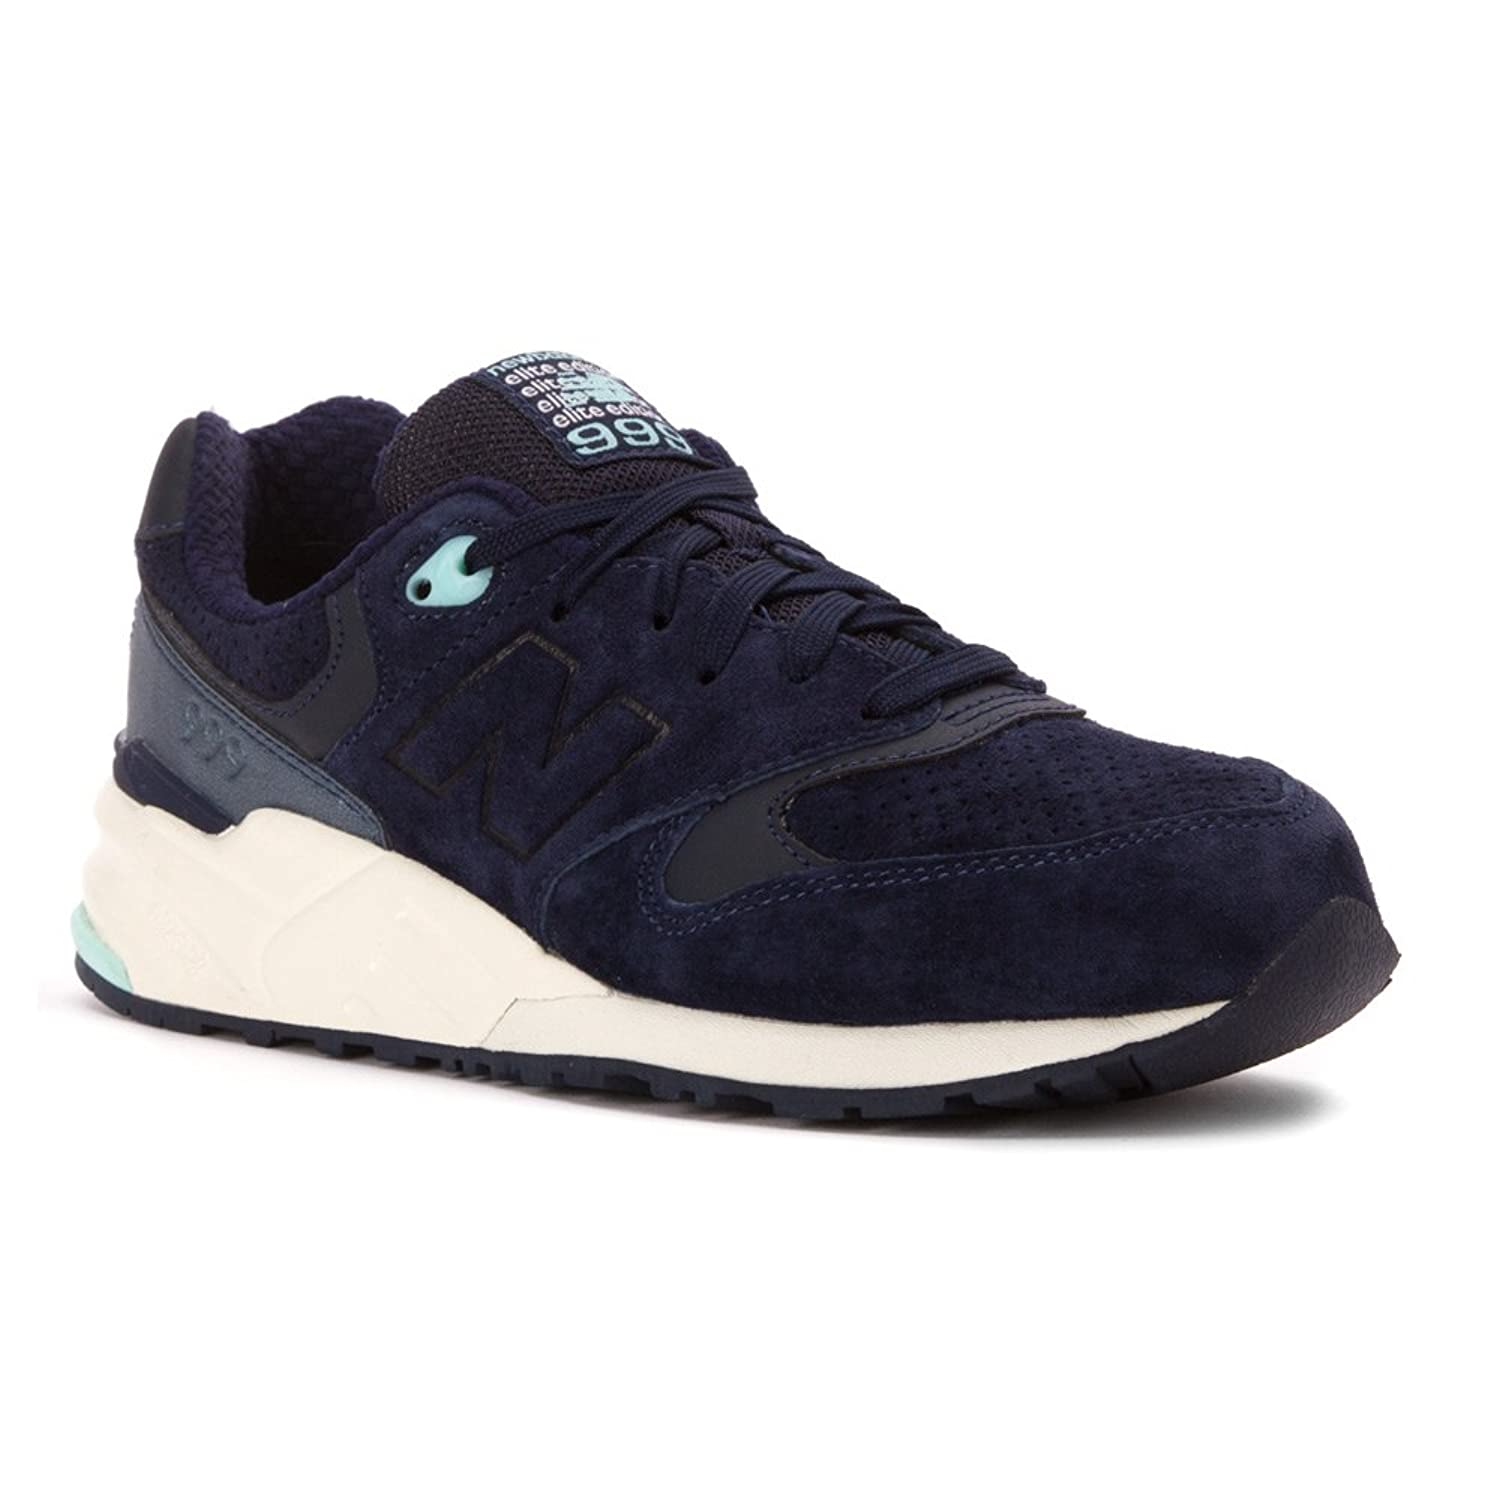 top 10 new balance shoes woman 999 games nl